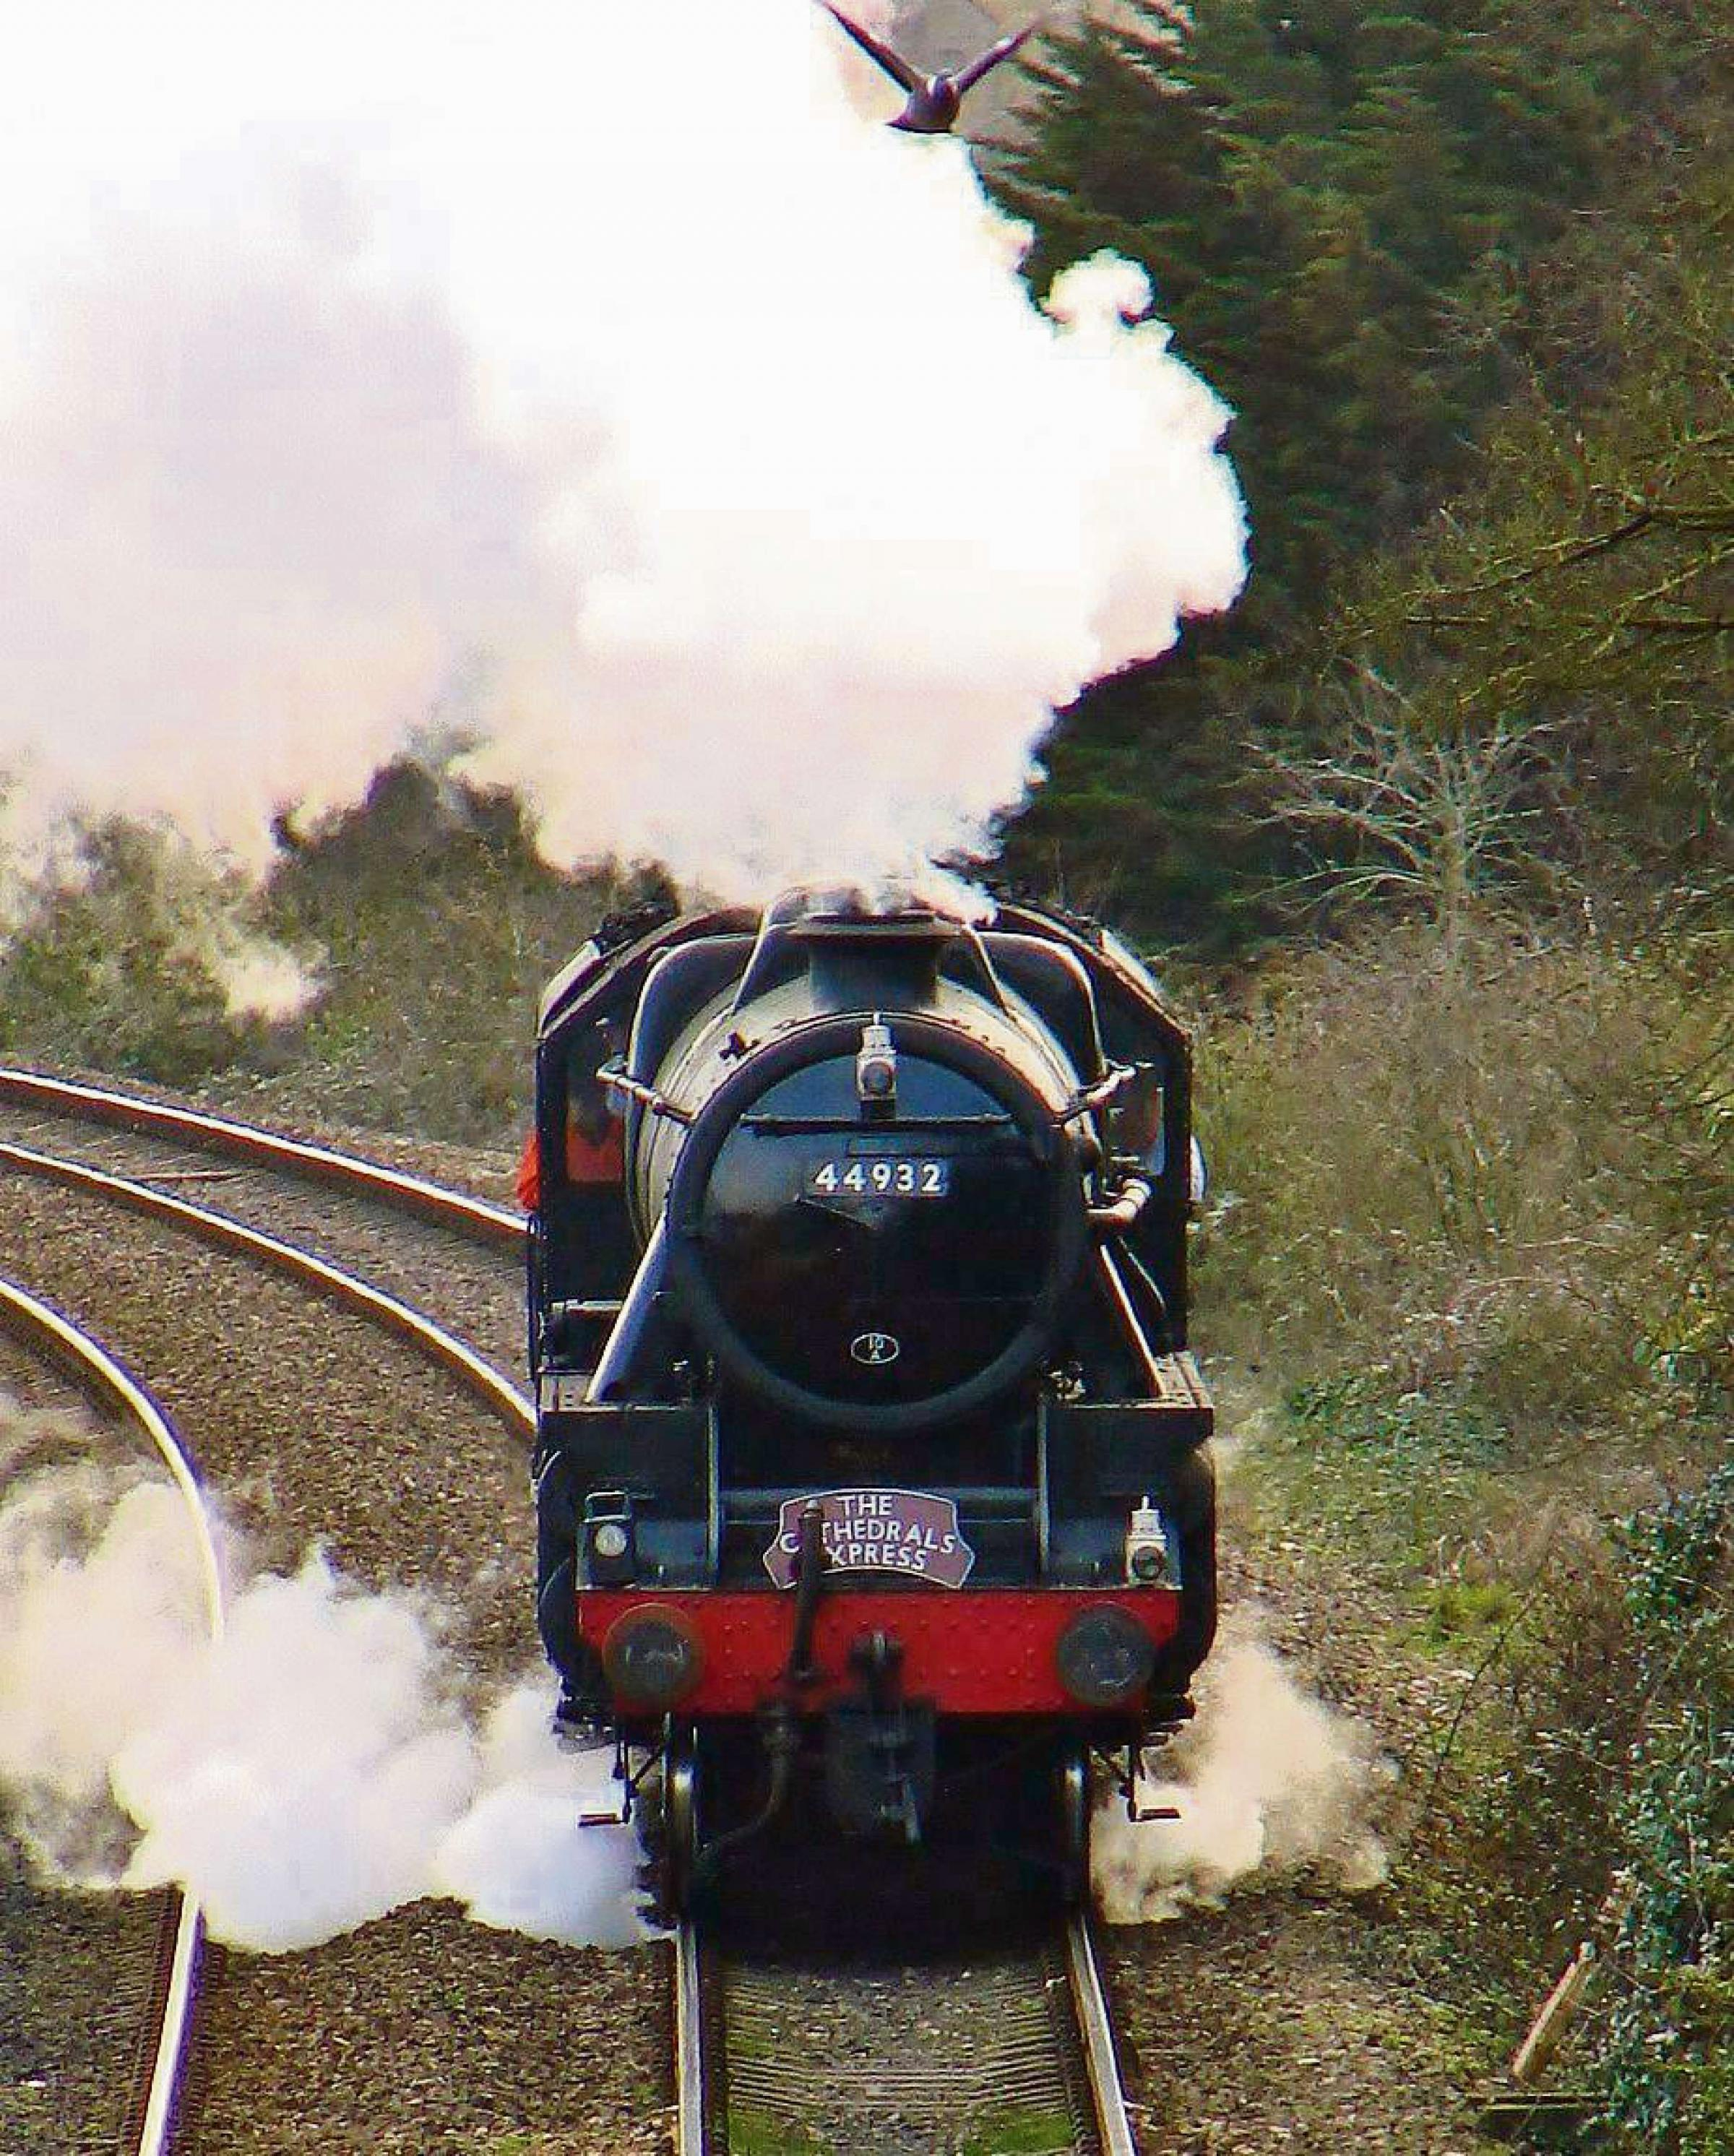 CLASSIC: Sue Foley took this snap of  the Stanier Black 5 steam engine 44932 scaring a local dove as it raced towards Dinas Powys station (Pic: Sue Foley /Dinas Powys Pictures)